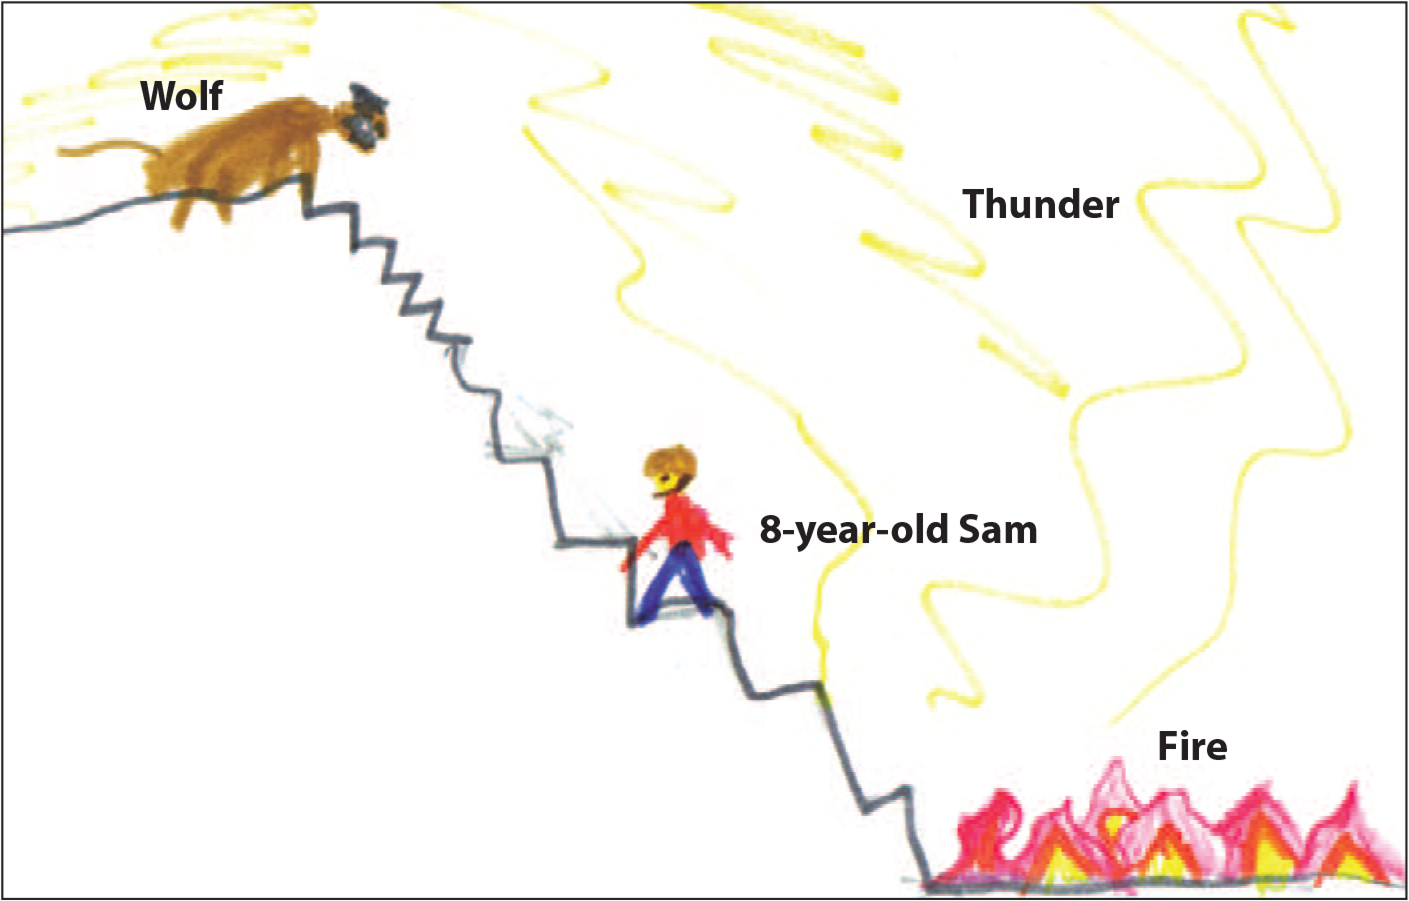 """A depiction of another of Sam's nightmares: """"There is thunder, fire, and a wolf. Thunder is scary. If you go up, the wolf attacks you. If you go down, you get burned."""""""